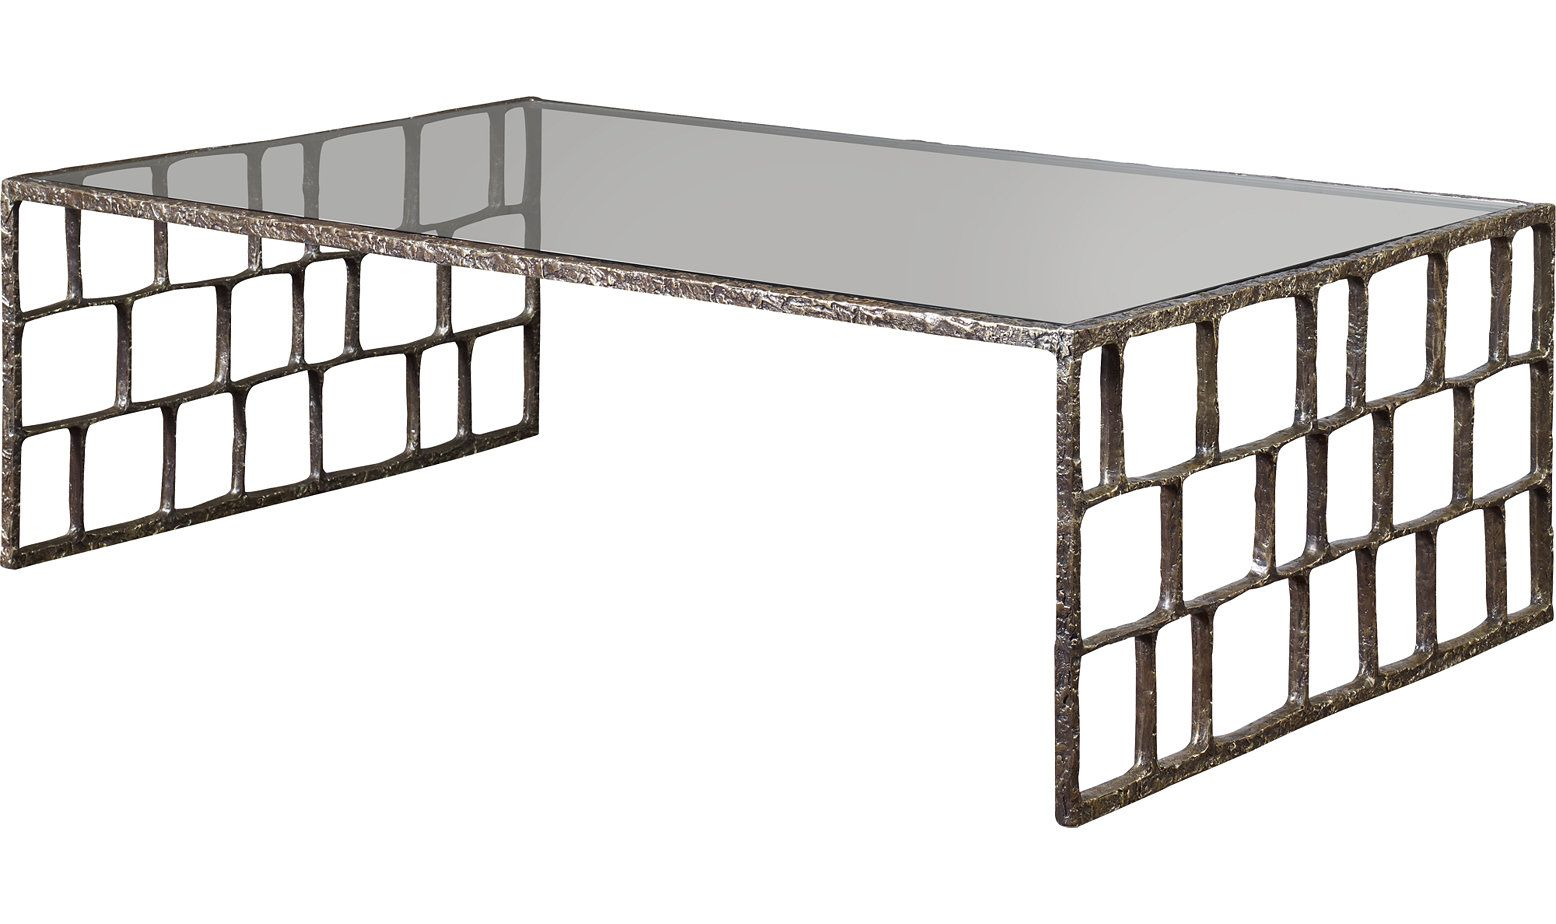 Hp Link Cocktail Table By Thomas Pheasant 8650 Baker Furniture W 52in D 30in H 16 25in Cocktail Tables Coffee Table Glass Top Coffee Table [ 924 x 1556 Pixel ]